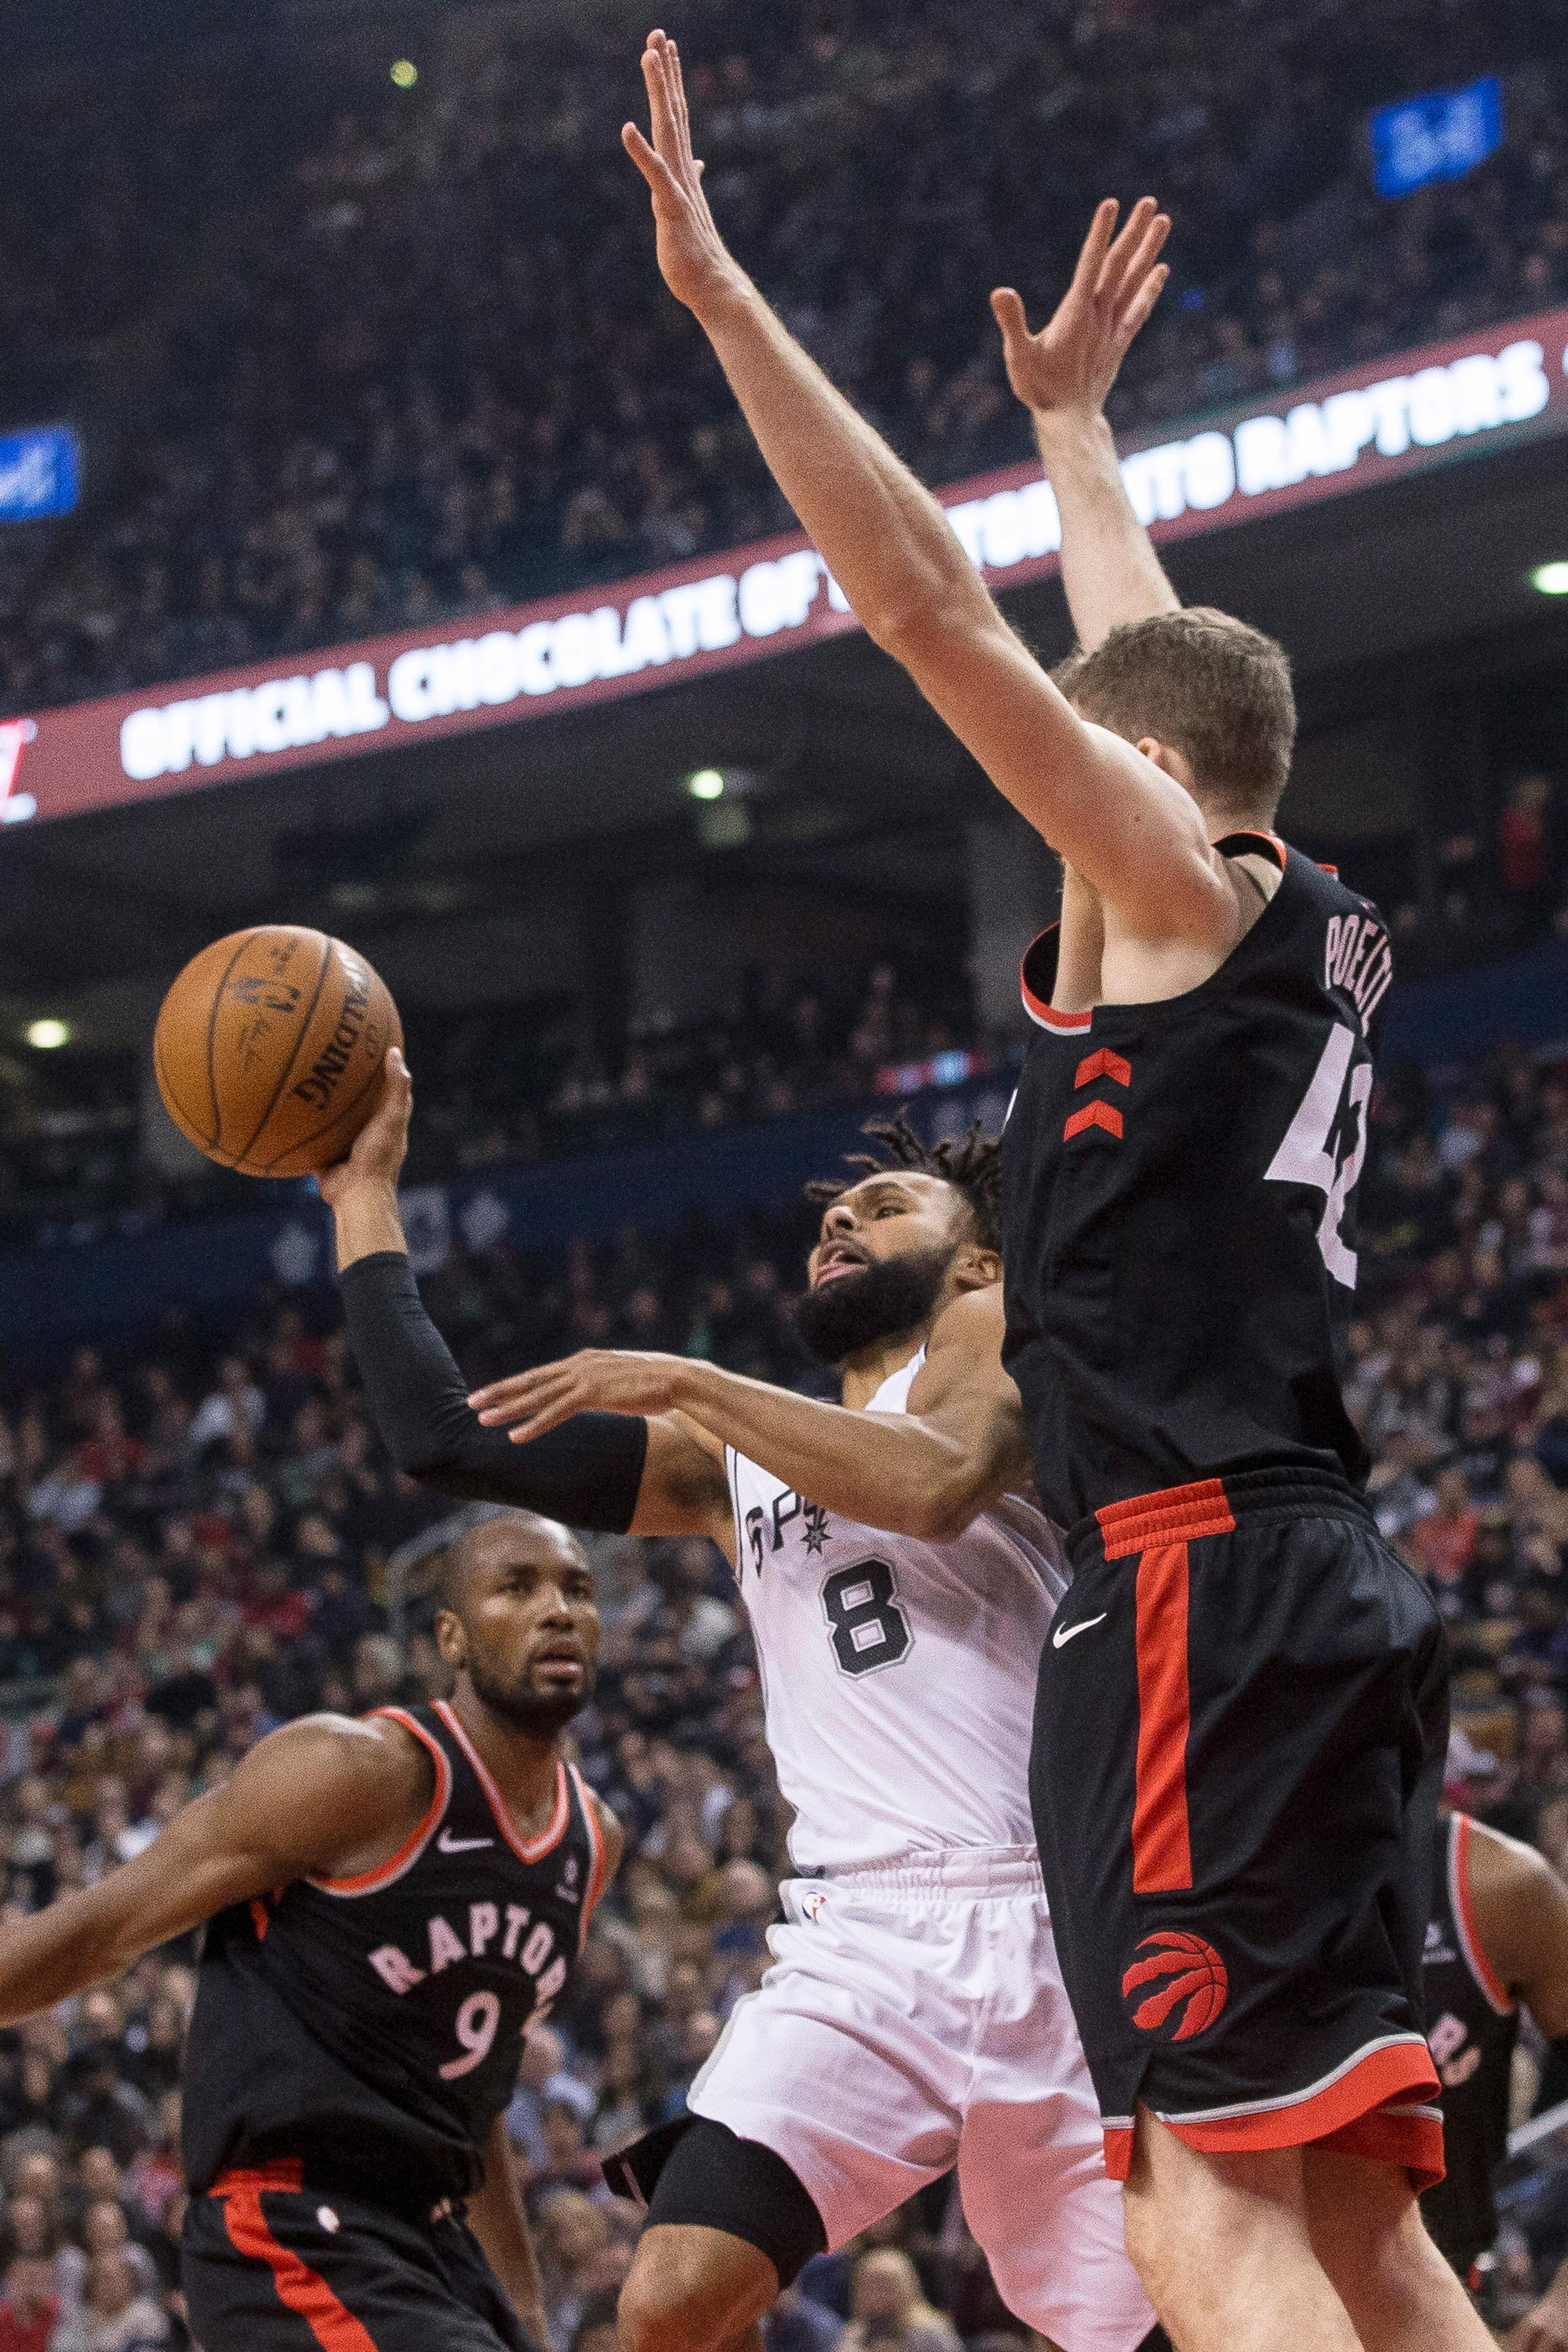 San Antonio Spurs guard Patty Mills (8) passes the ball as Toronto Raptors centrer Jakob Poeltl (42) defends during the first half of an NBA basketball game Friday, Jan. 19, 2018, in Toronto. (Chris Young/The Canadian Press via AP)